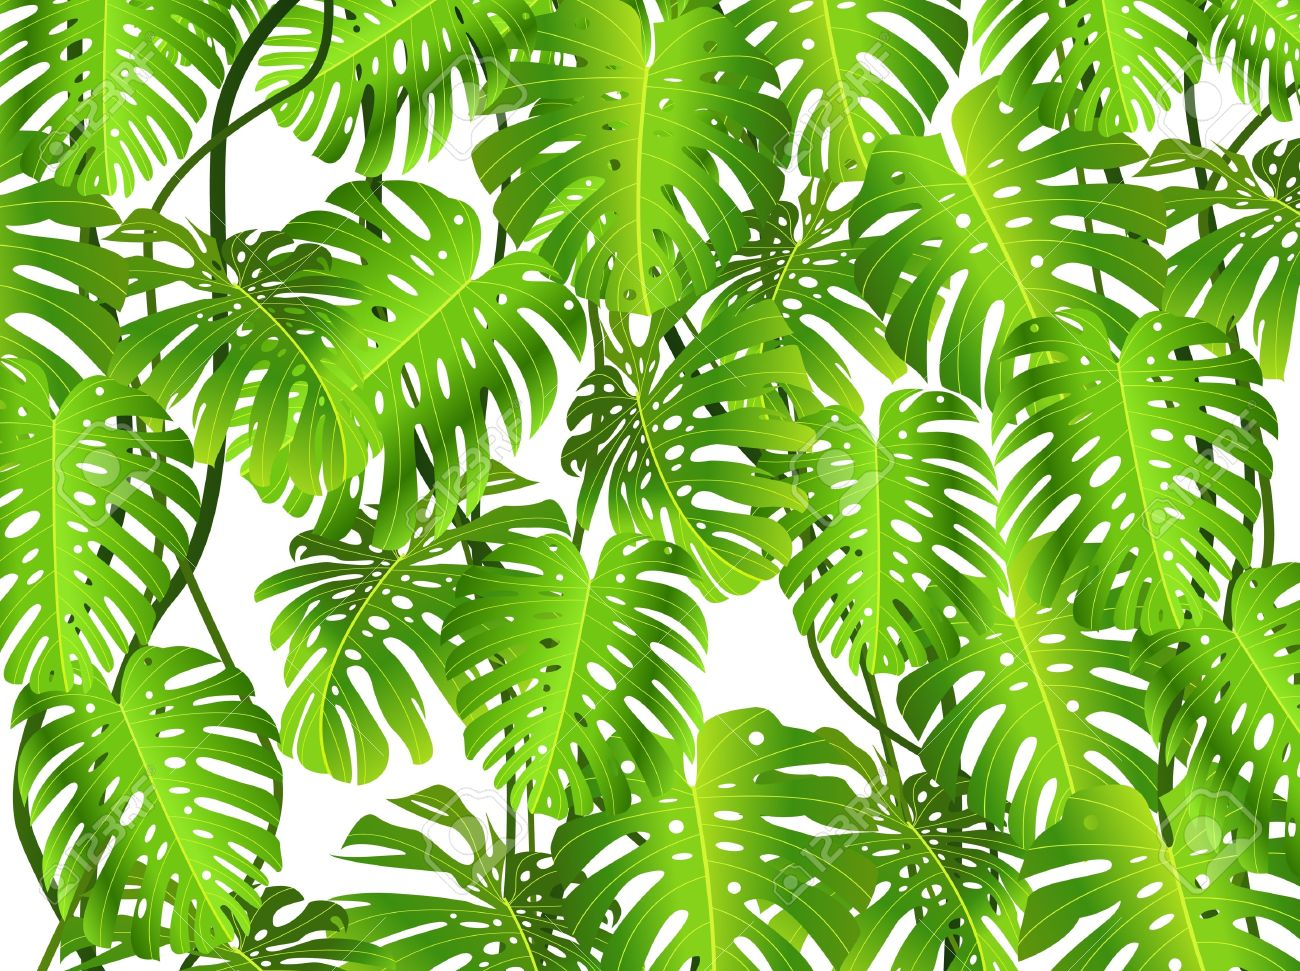 Ivy clipart jungle leaves background Jungle Jungle Clipart Leaf Clipart